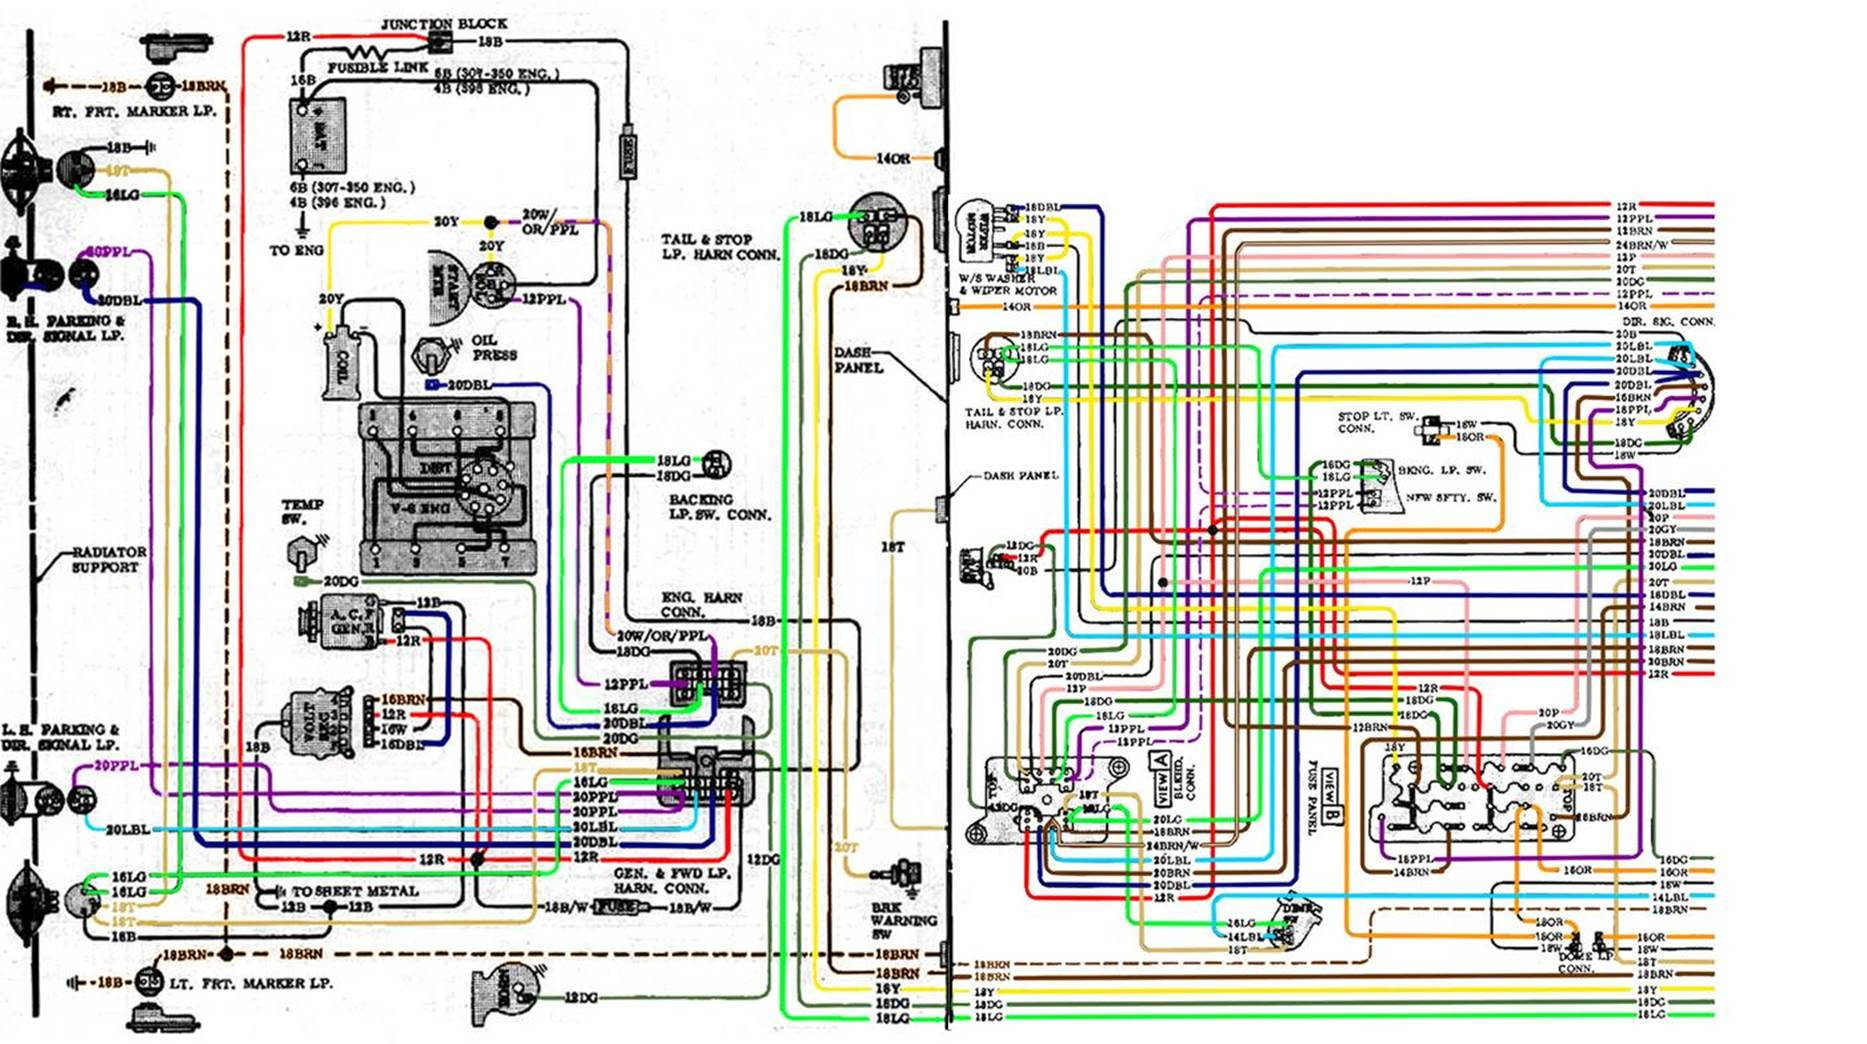 image002 67 72 chevy wiring diagram  at readyjetset.co